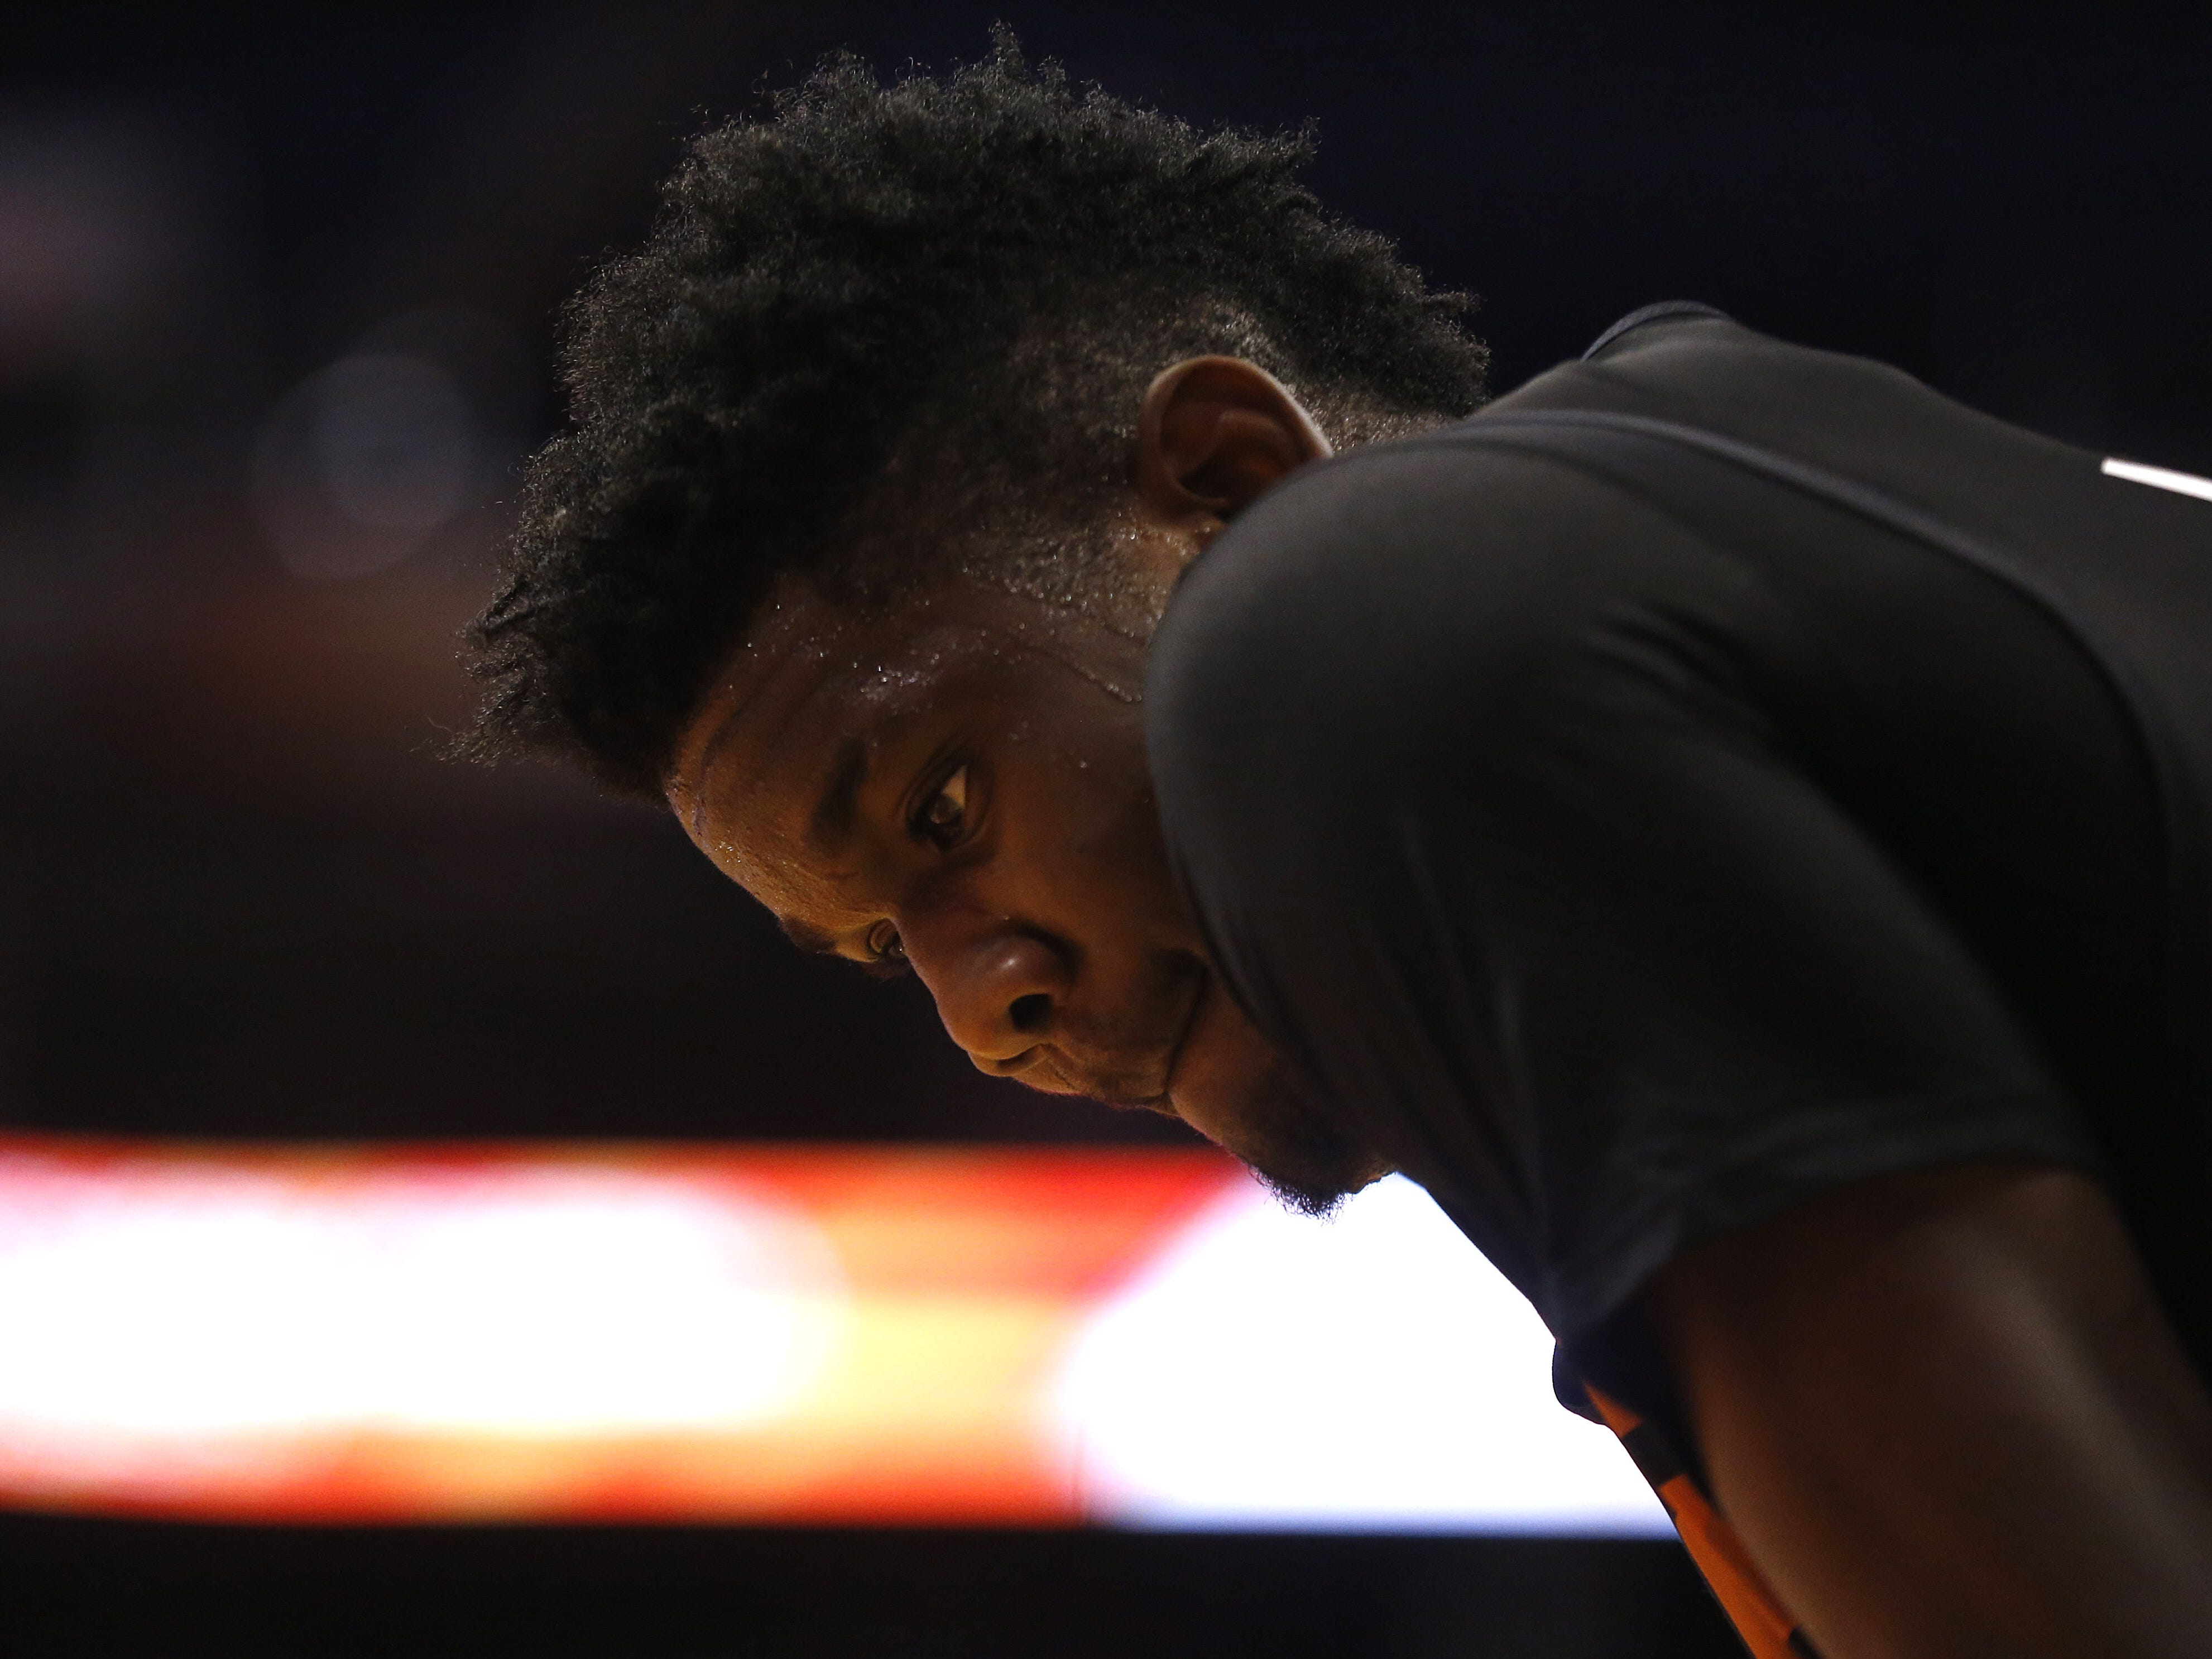 Suns Deandre Ayton looks at the court during an Open Practice at Talking Stick Resort Arena in Phoenix, Ariz. on Sept. 29, 2018.